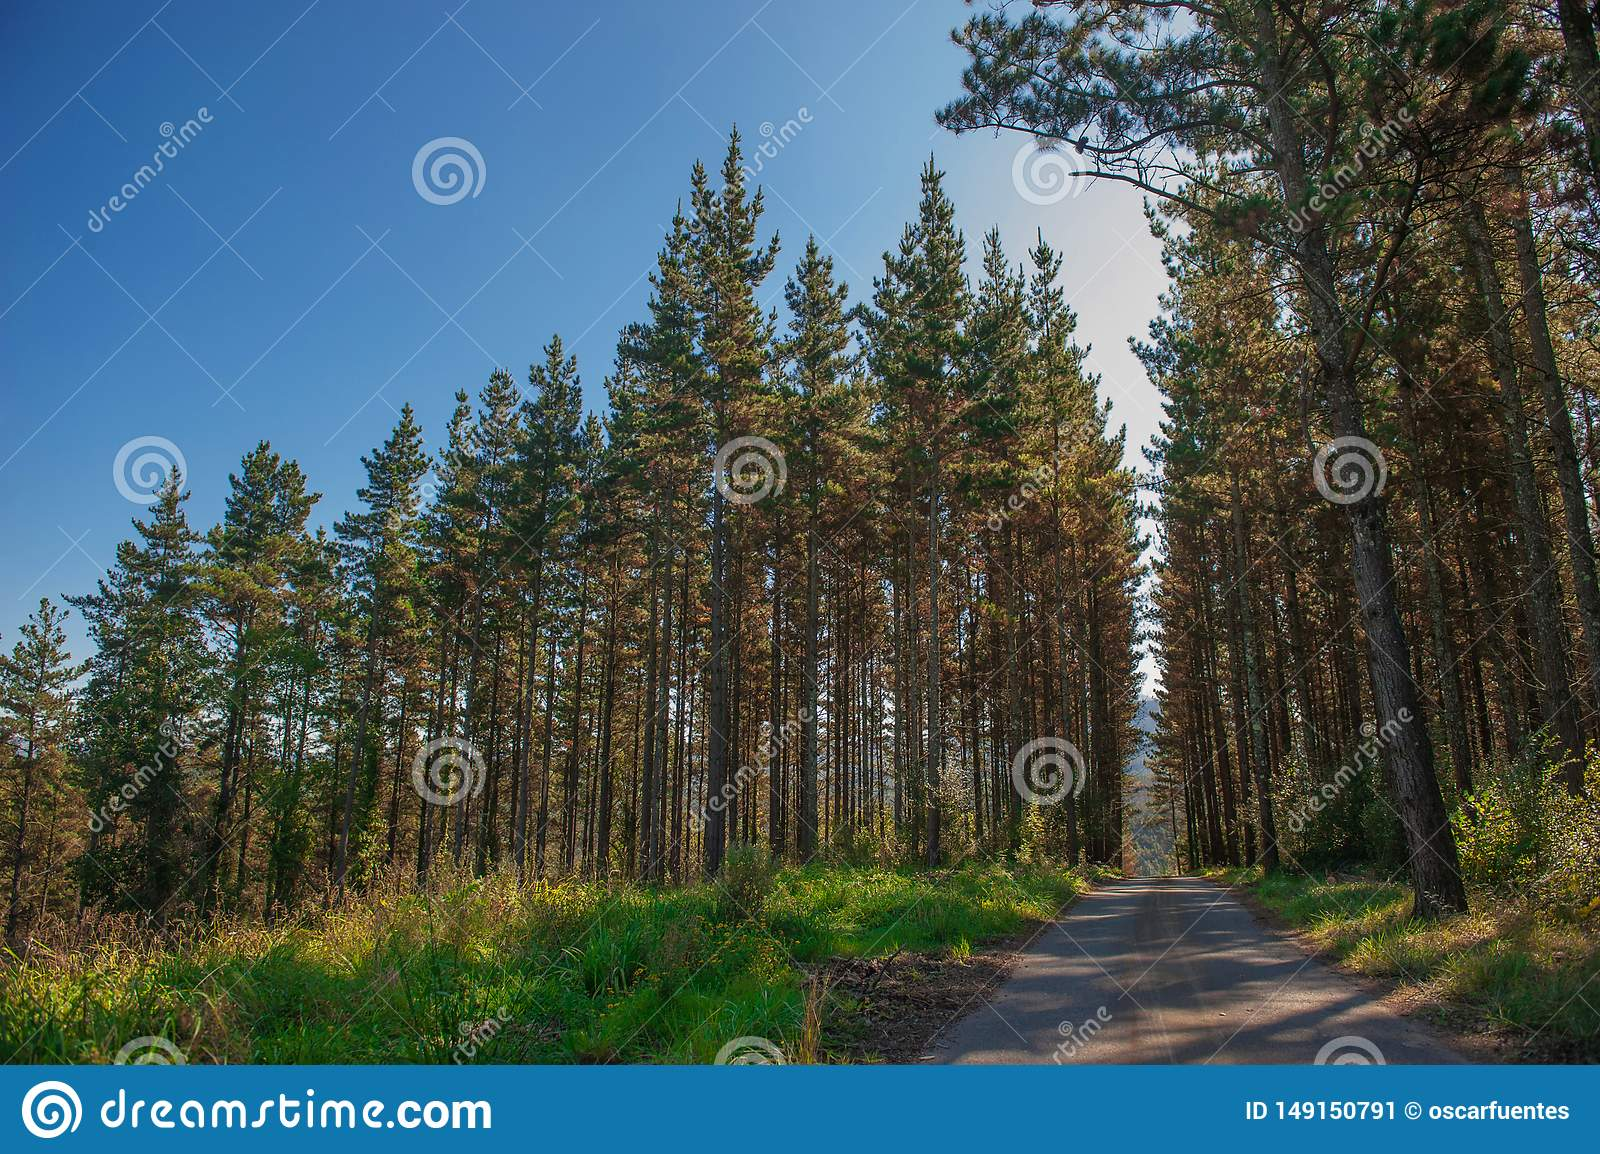 Forest of trees. forest road. green nature